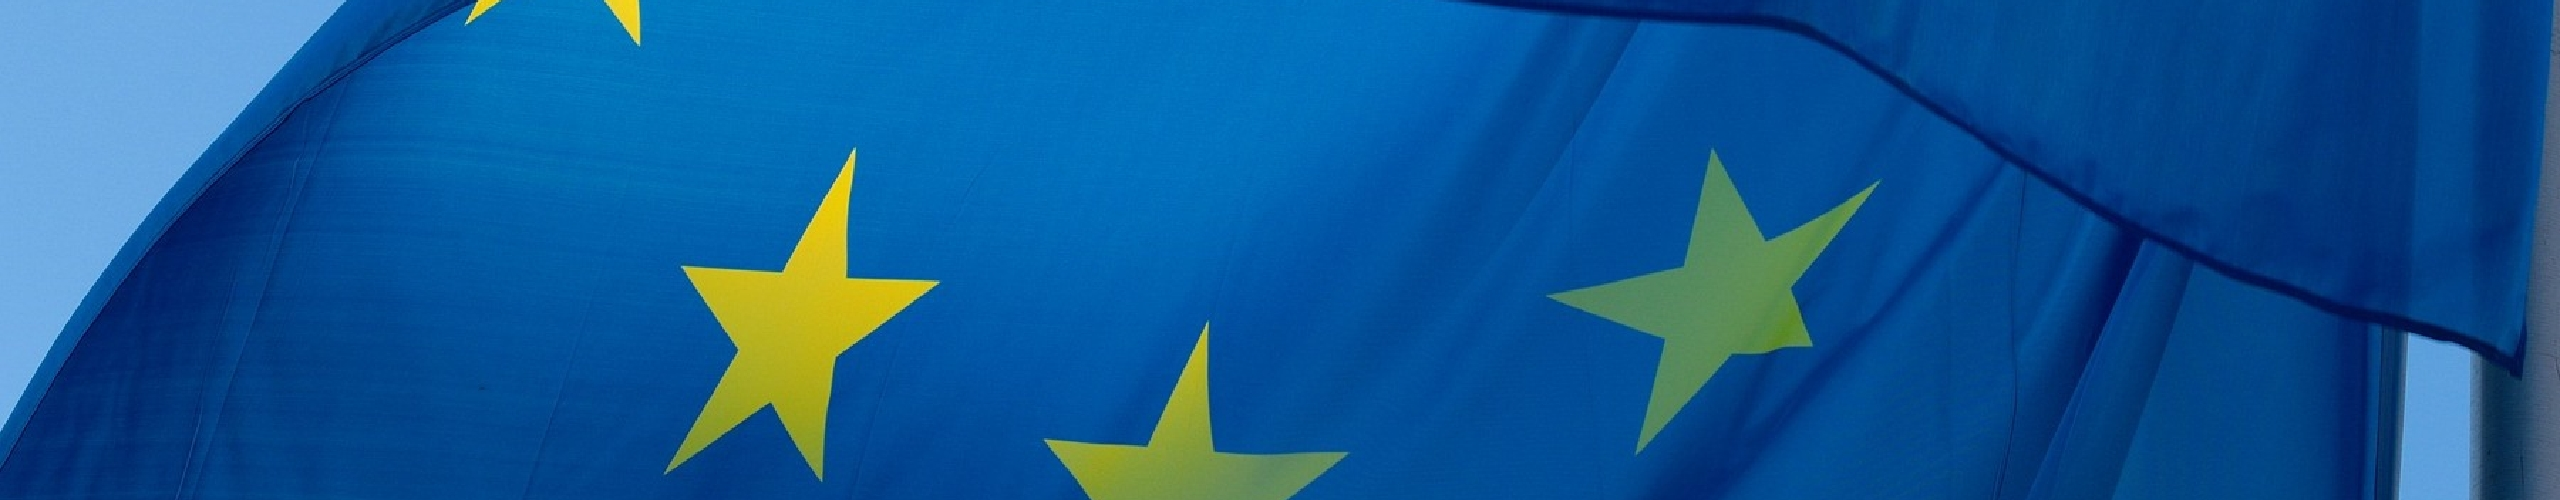 EU flag panel background